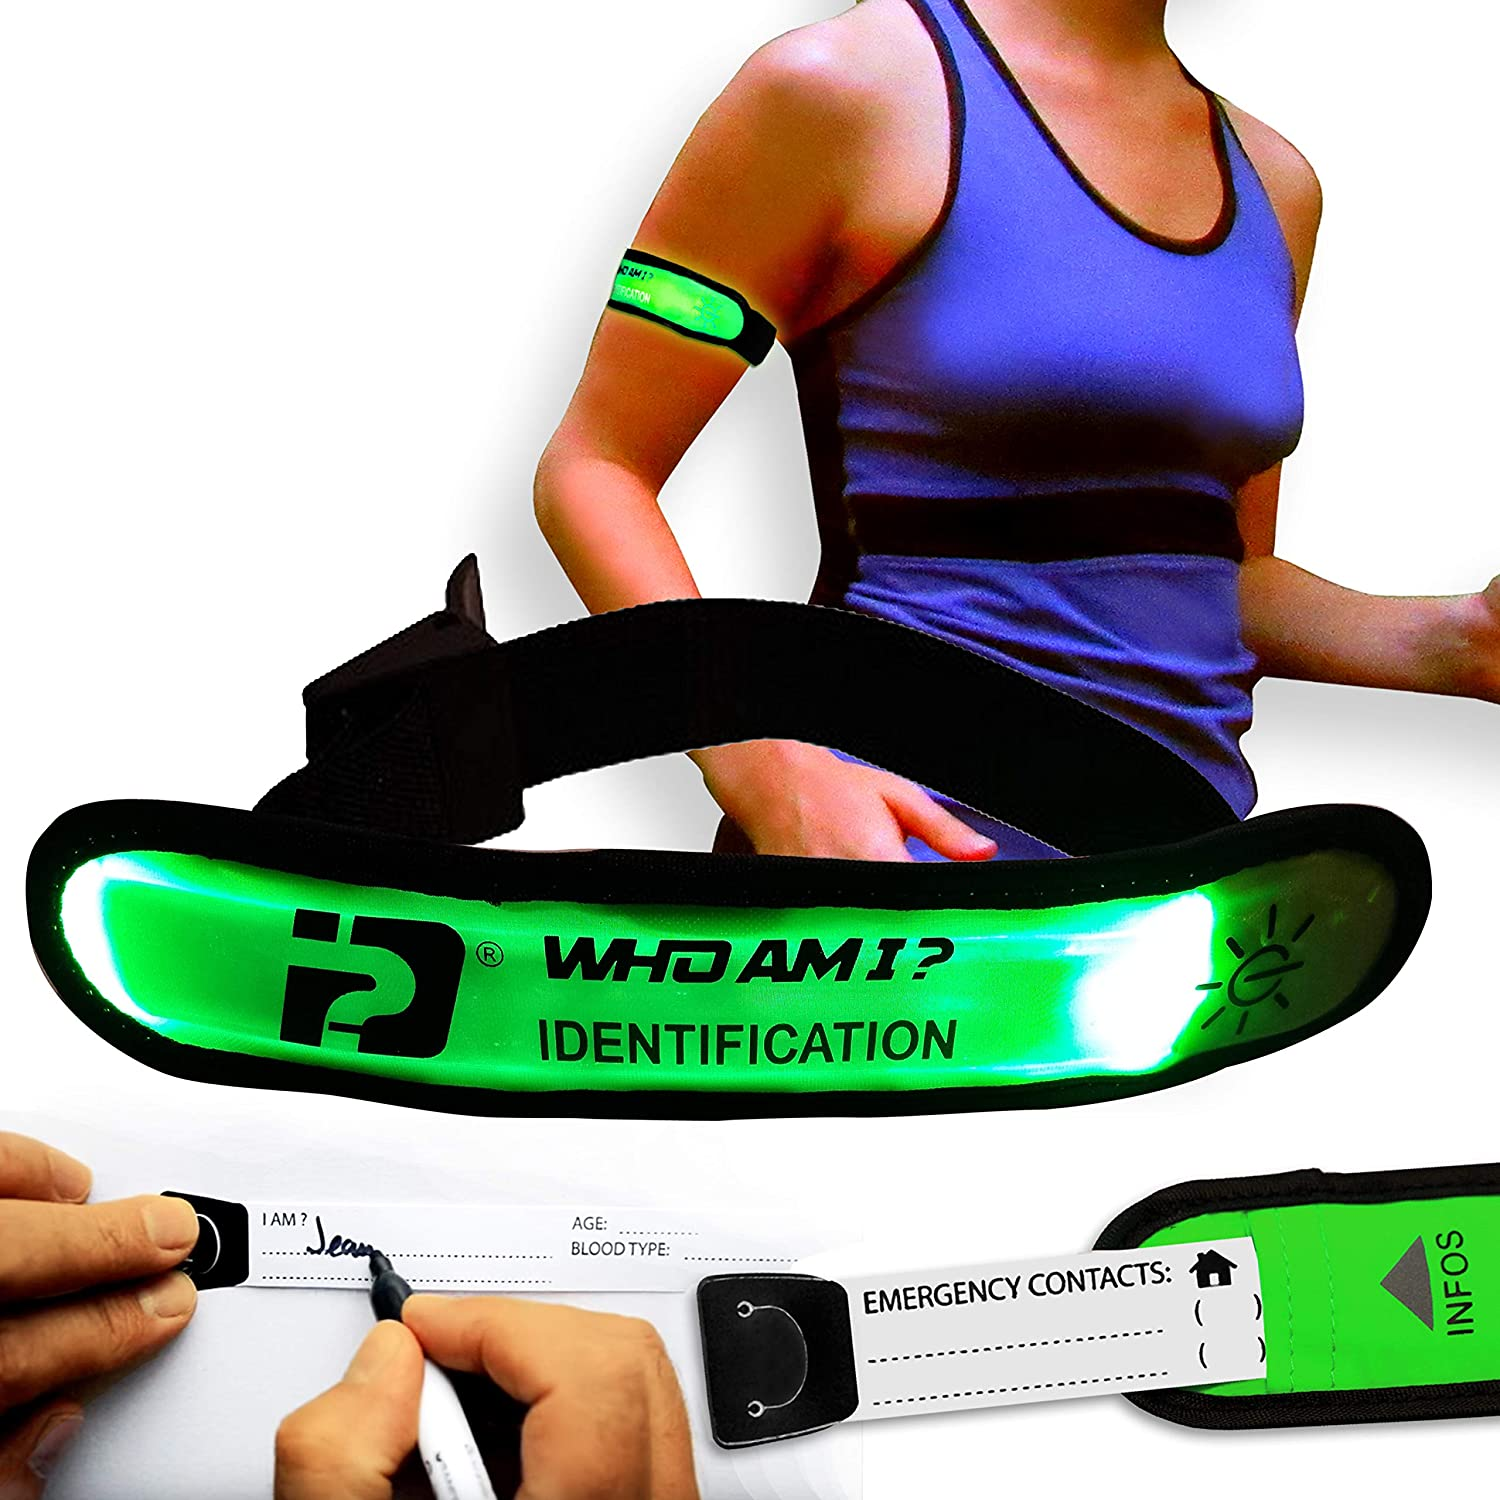 WHO AM I - LED Armband- Blink Or Glow Mode; Complete Identification,LED ID Band, Sport ID, Safety and Visibility, Night Running Gear, LED Running Armband, Travelers, Runners ID, Cycling ID Gear, GREEN